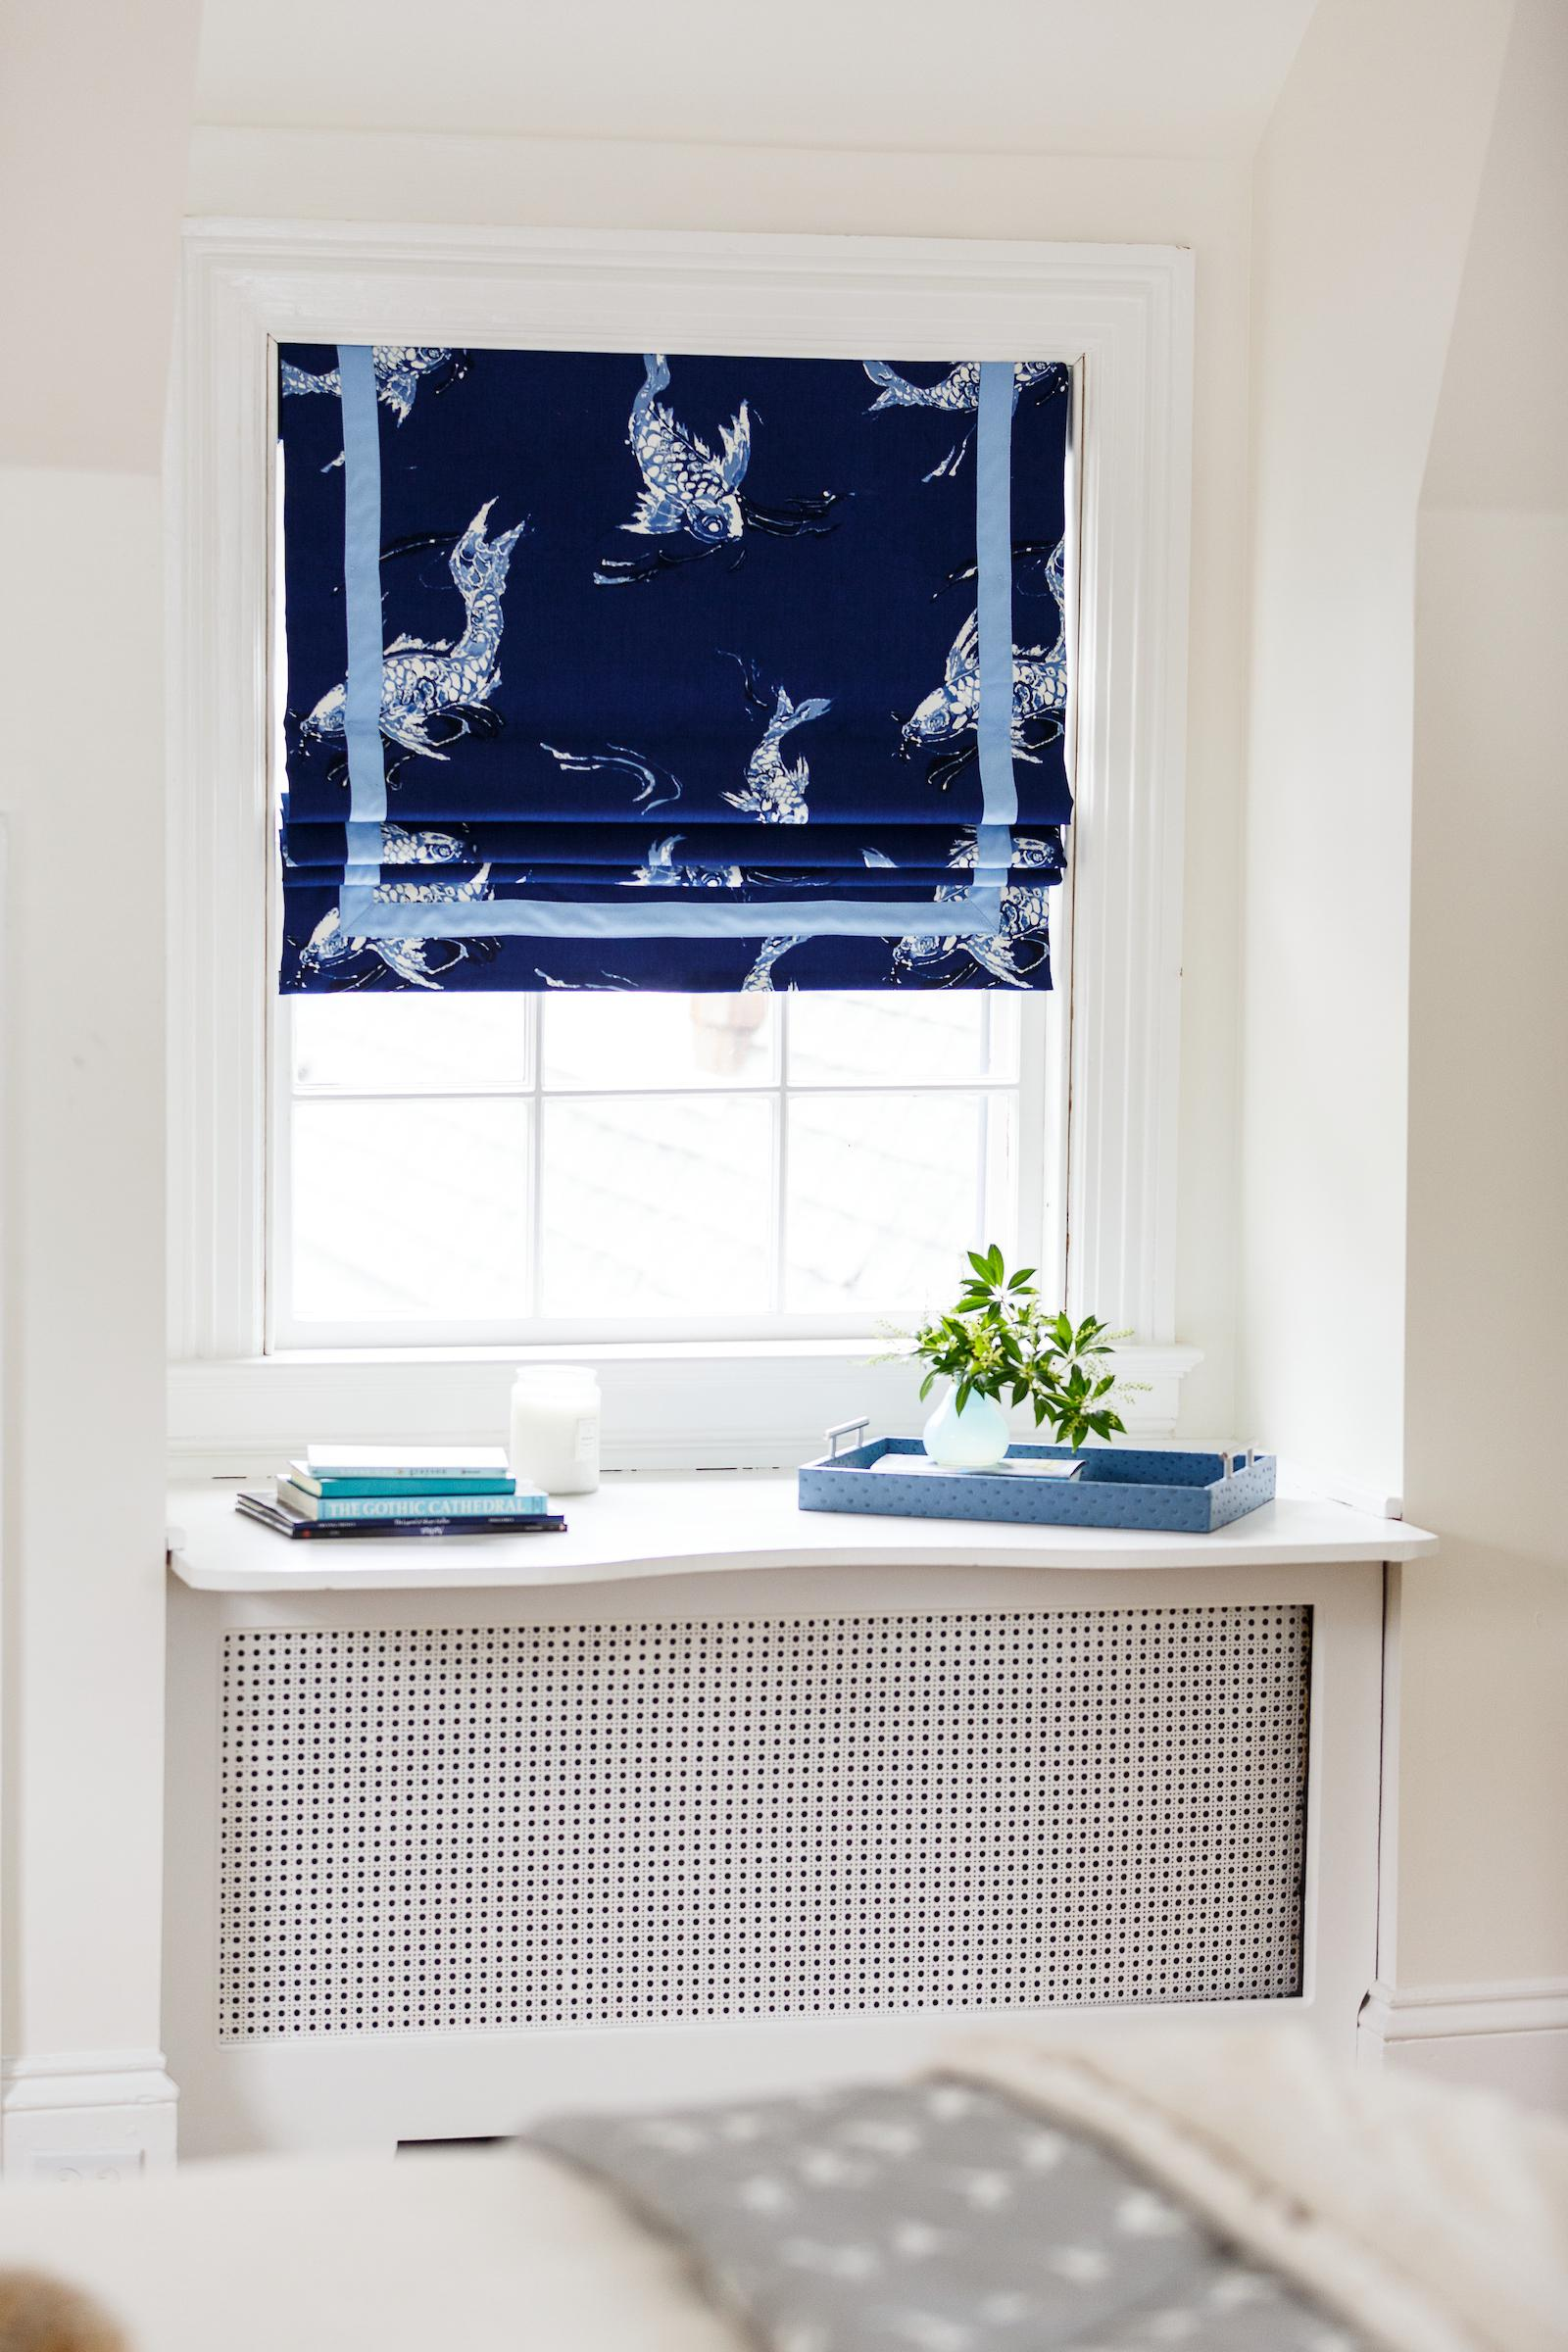 Navy Koi Fish Ralph Lauren Fabric Shades Interior By Sophia Shibles Bedroom  Kids Design Detail Cottage